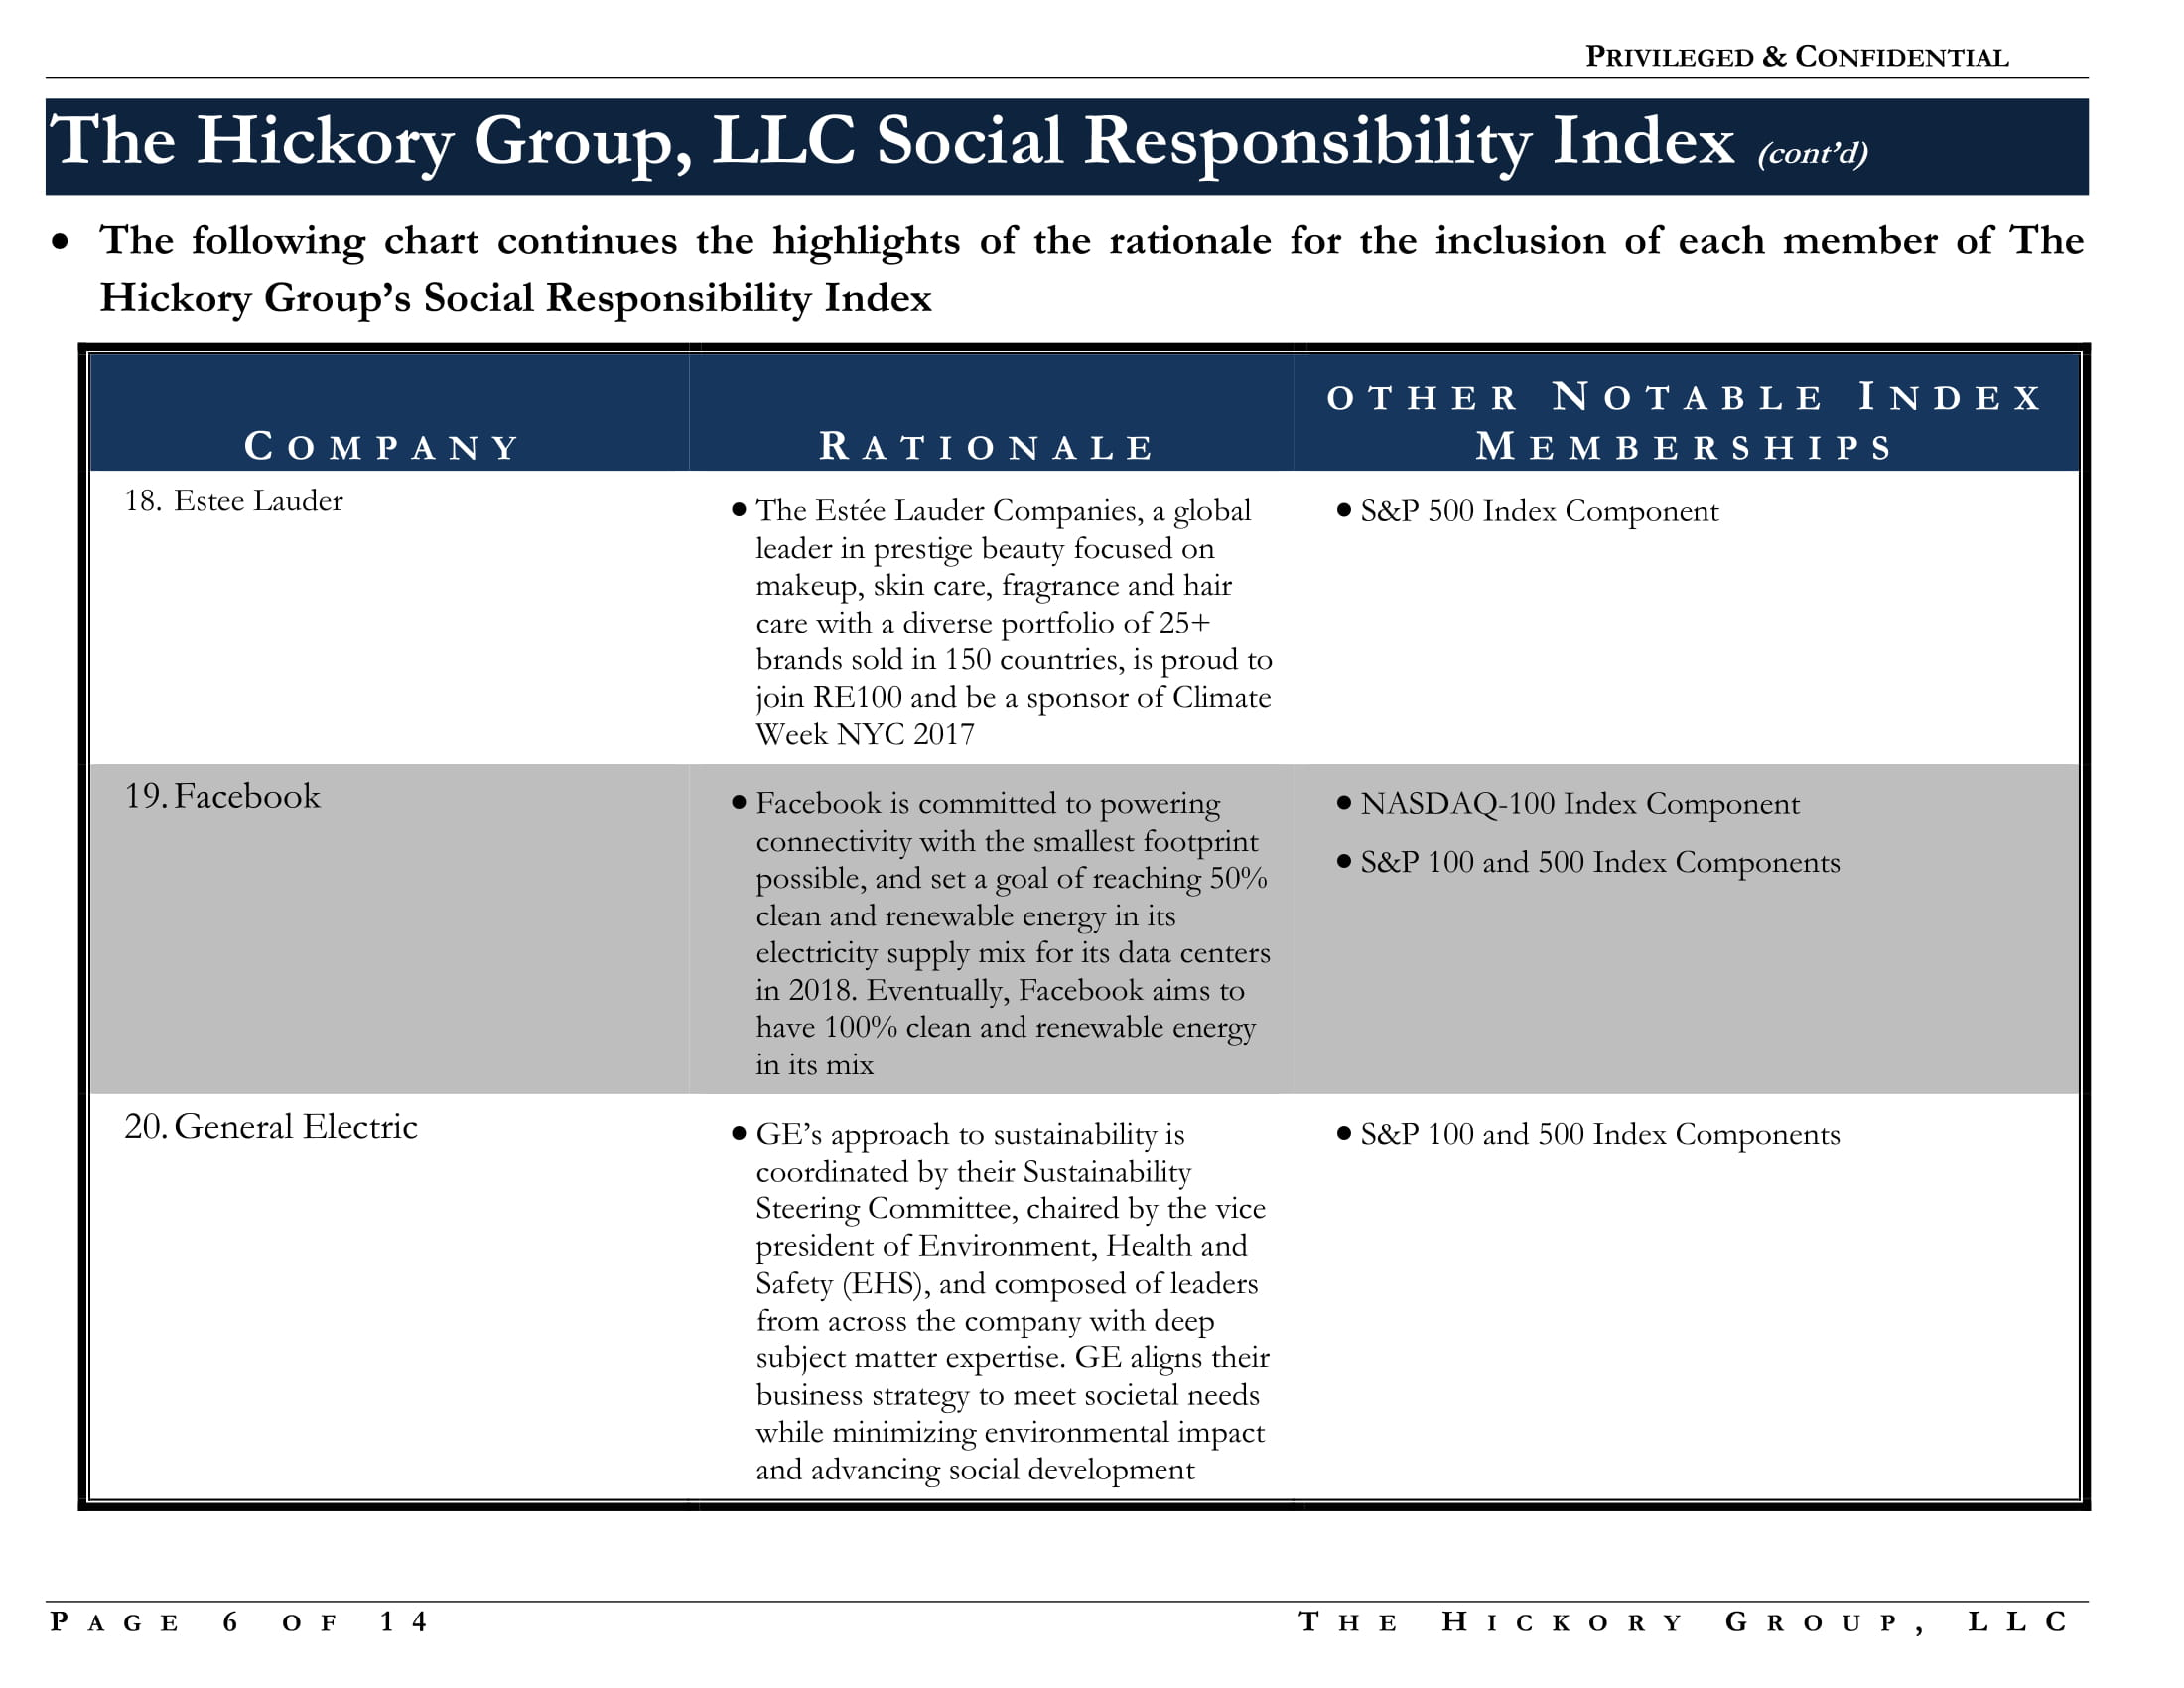 FINAL Social Responsibility Index  Notes and Rationale (7 October 2017) Privileged and Confidential-06.jpg